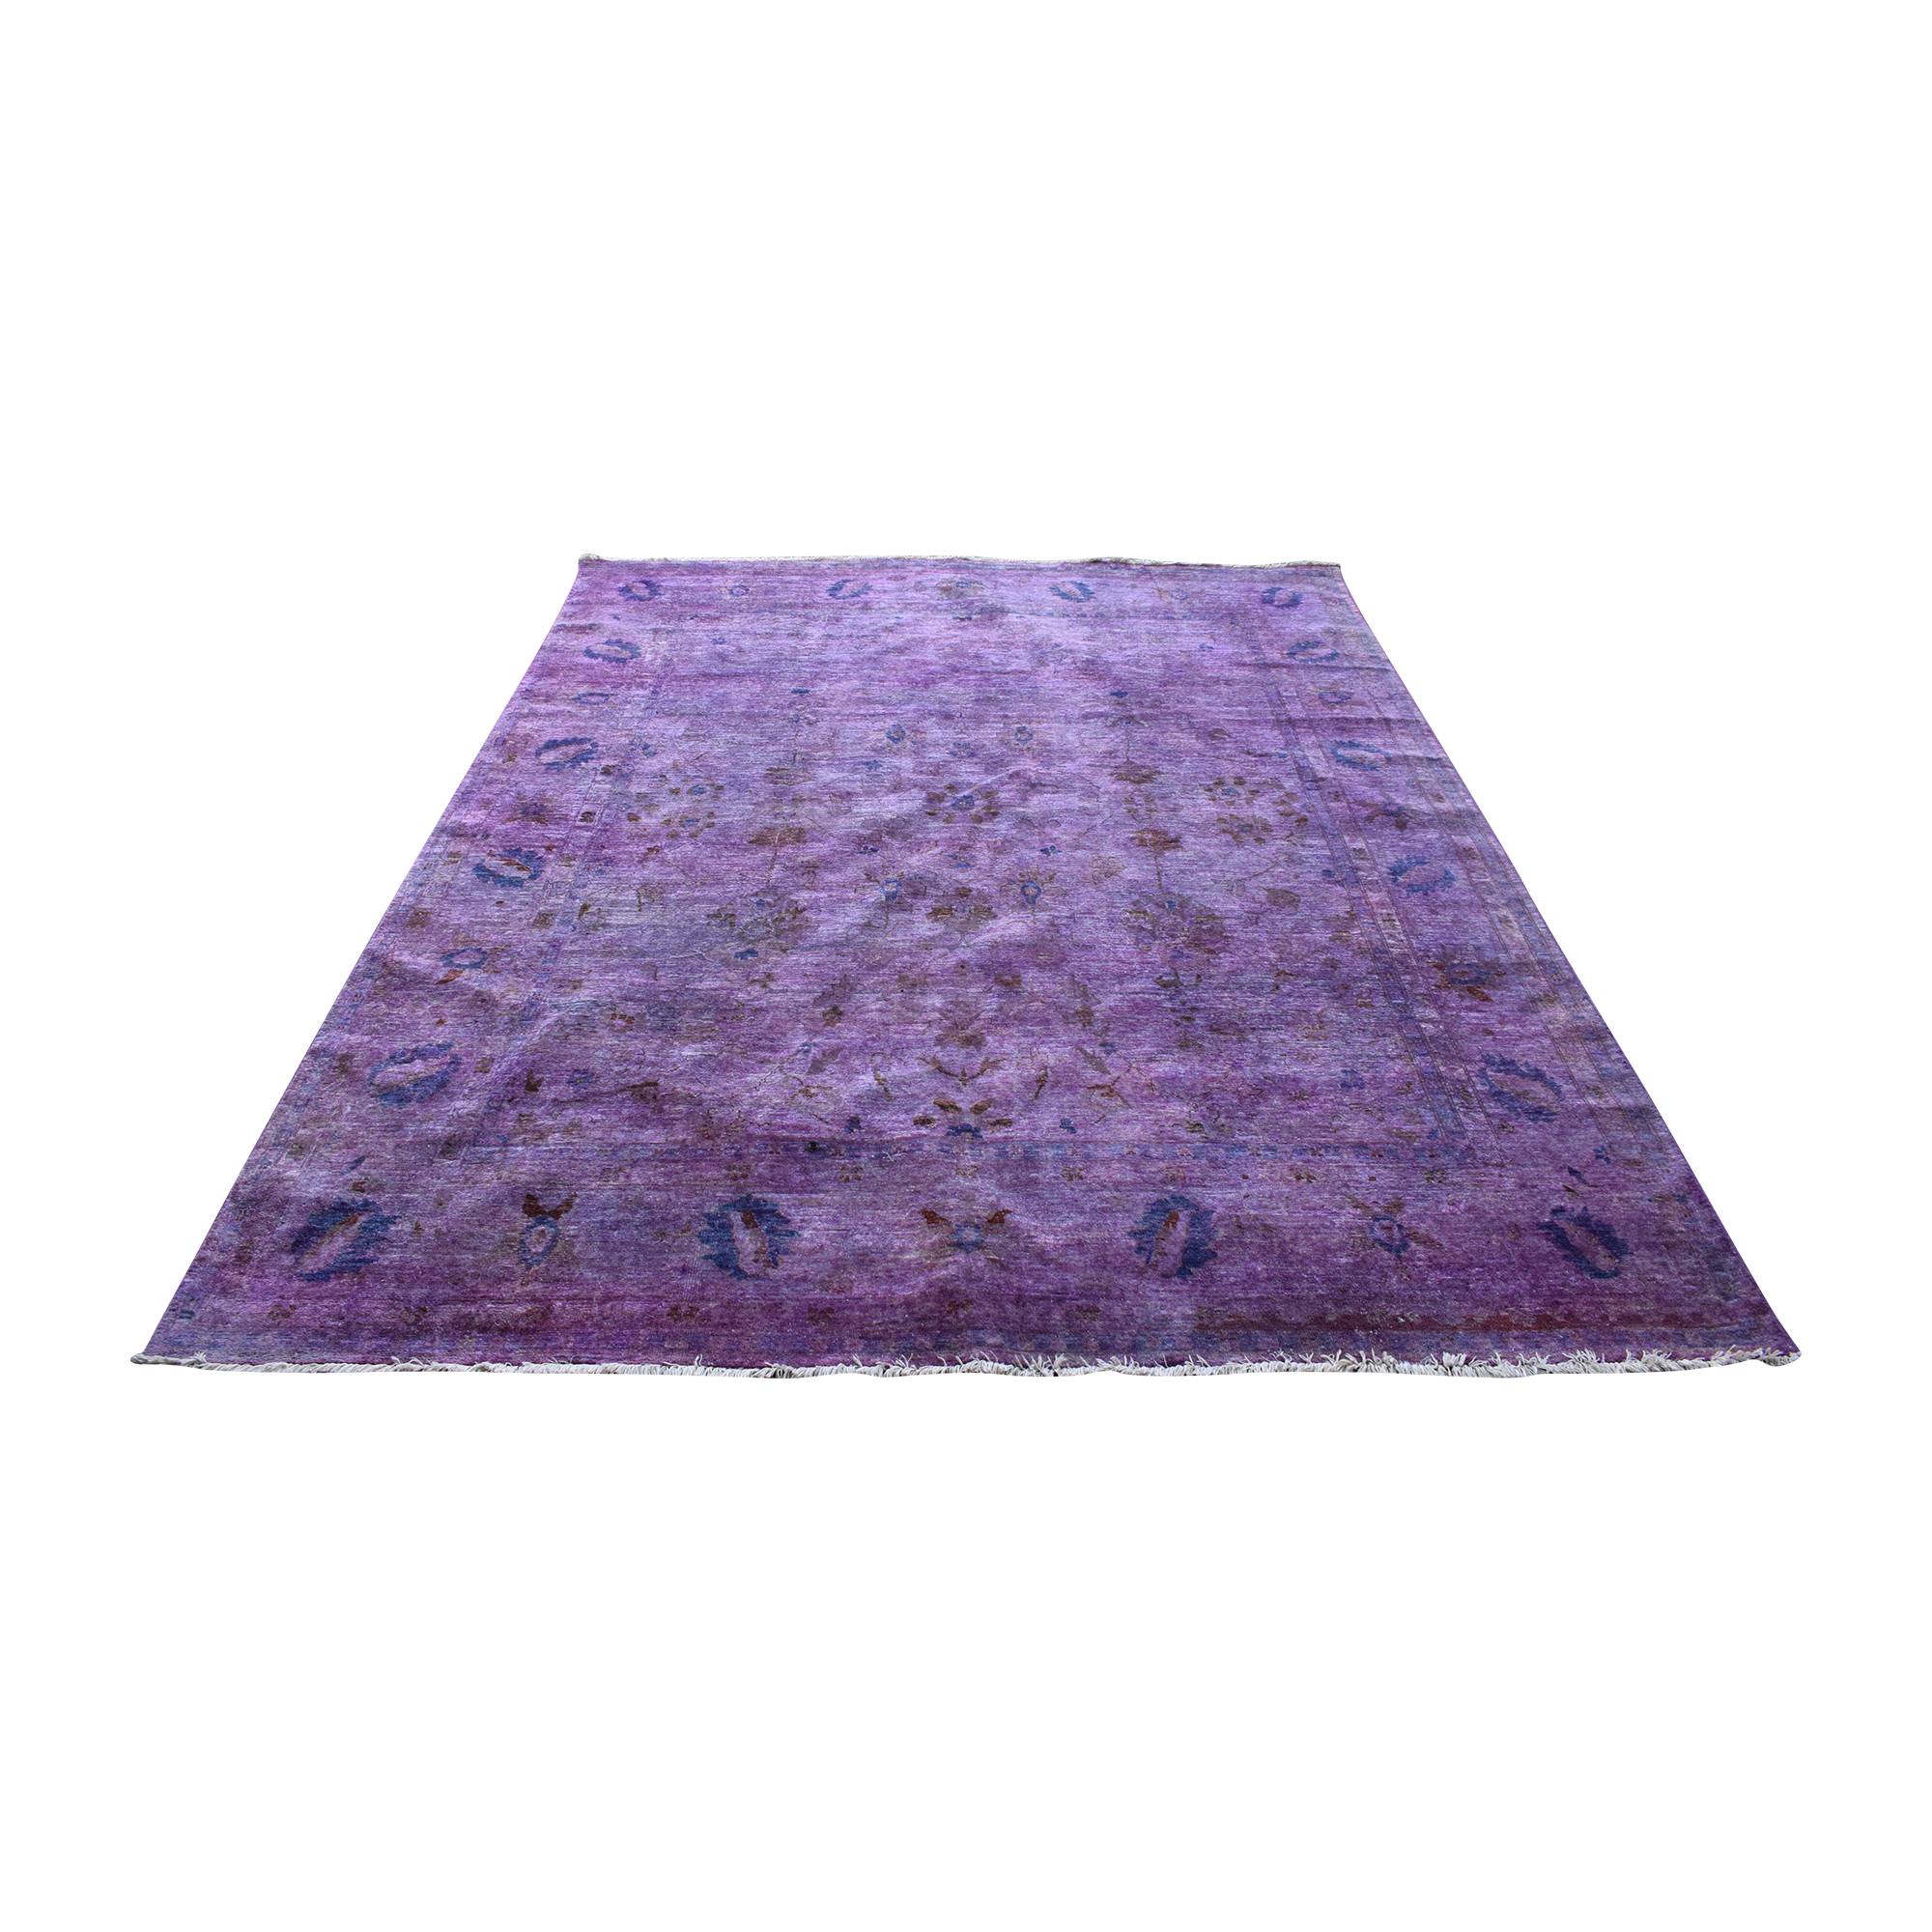 Rugs USA Rugs USA Overdyed Purple Rug ct